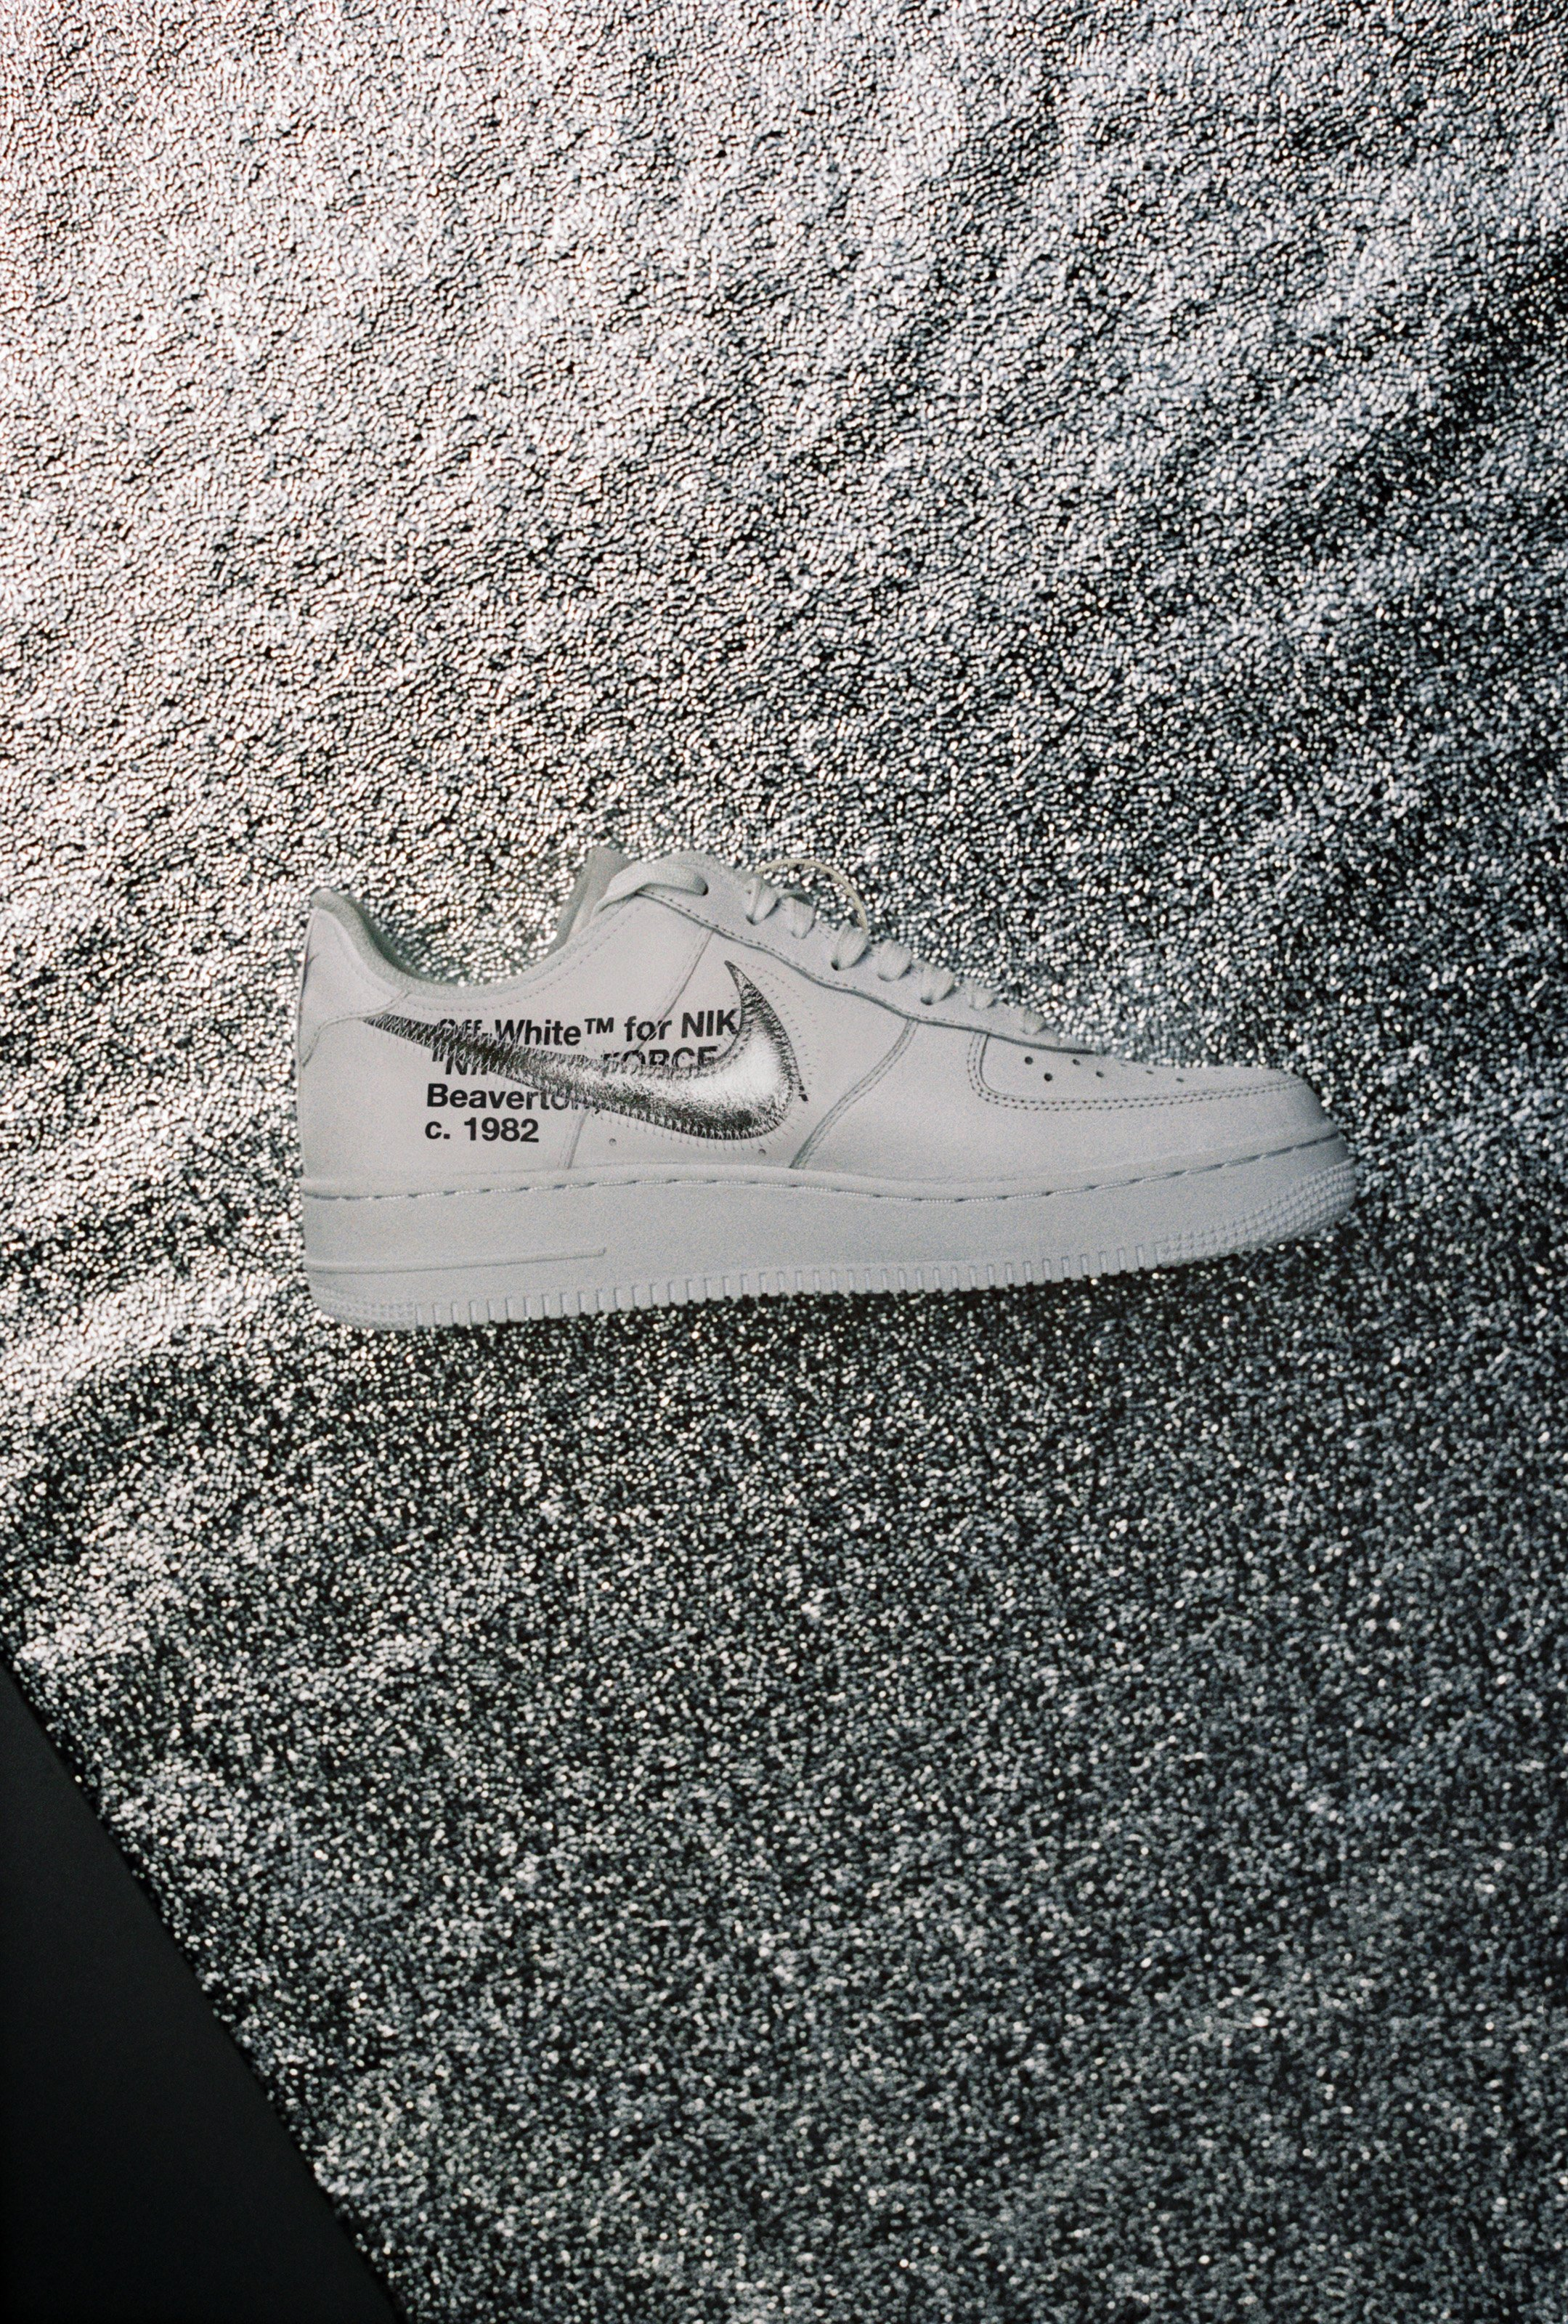 Off-White x Nike Air Force 1 Low ComplexCon Exclusive